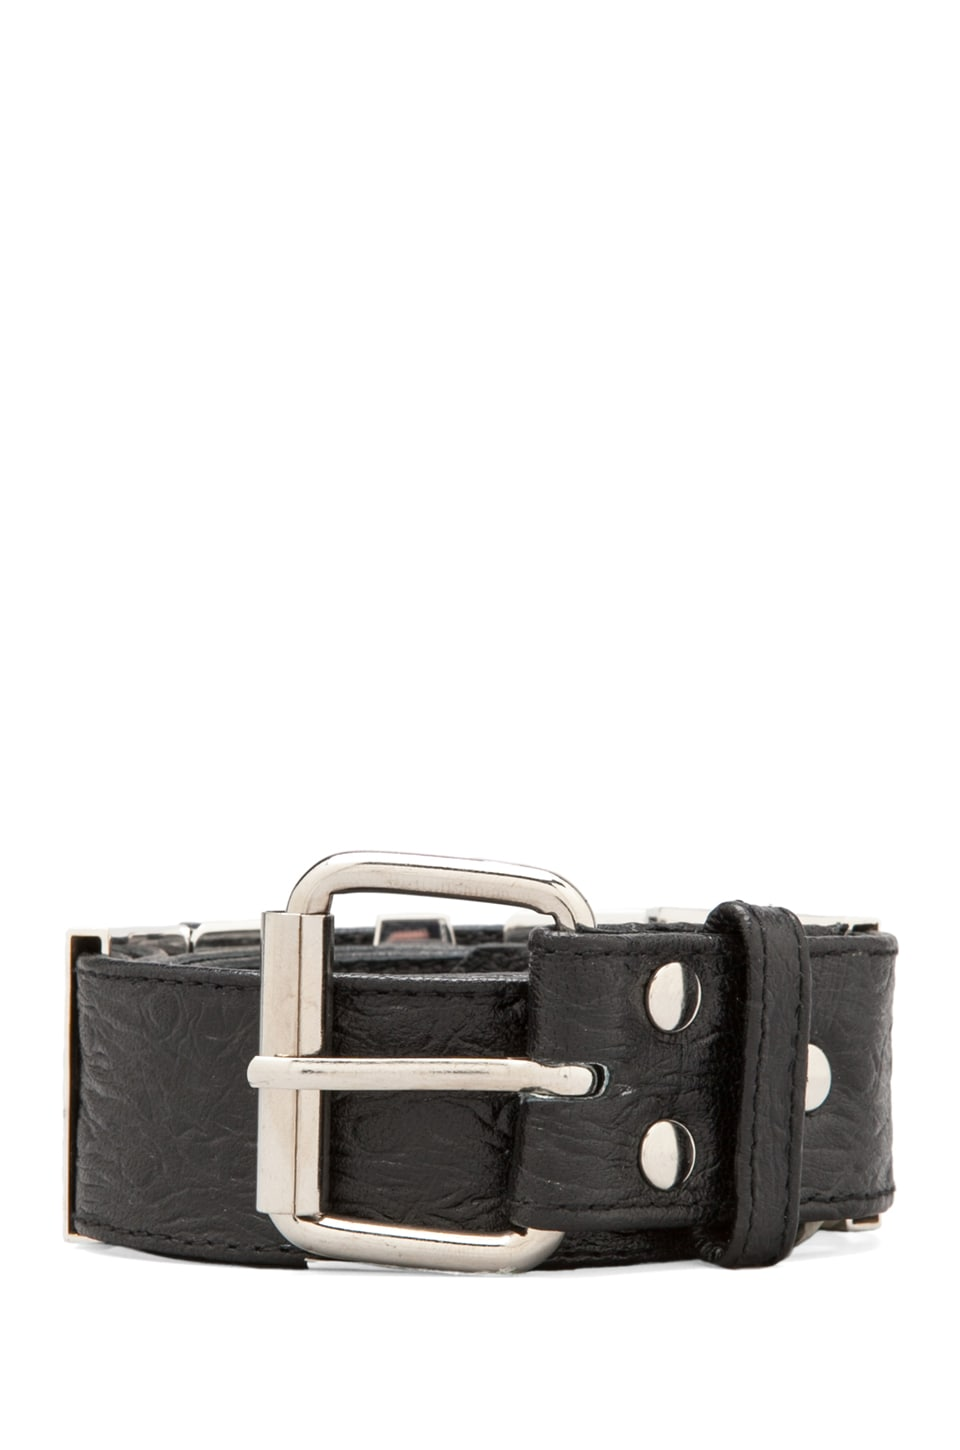 This is a Love Song Ostrich Leather Rad Letter Belt in Black/Silver